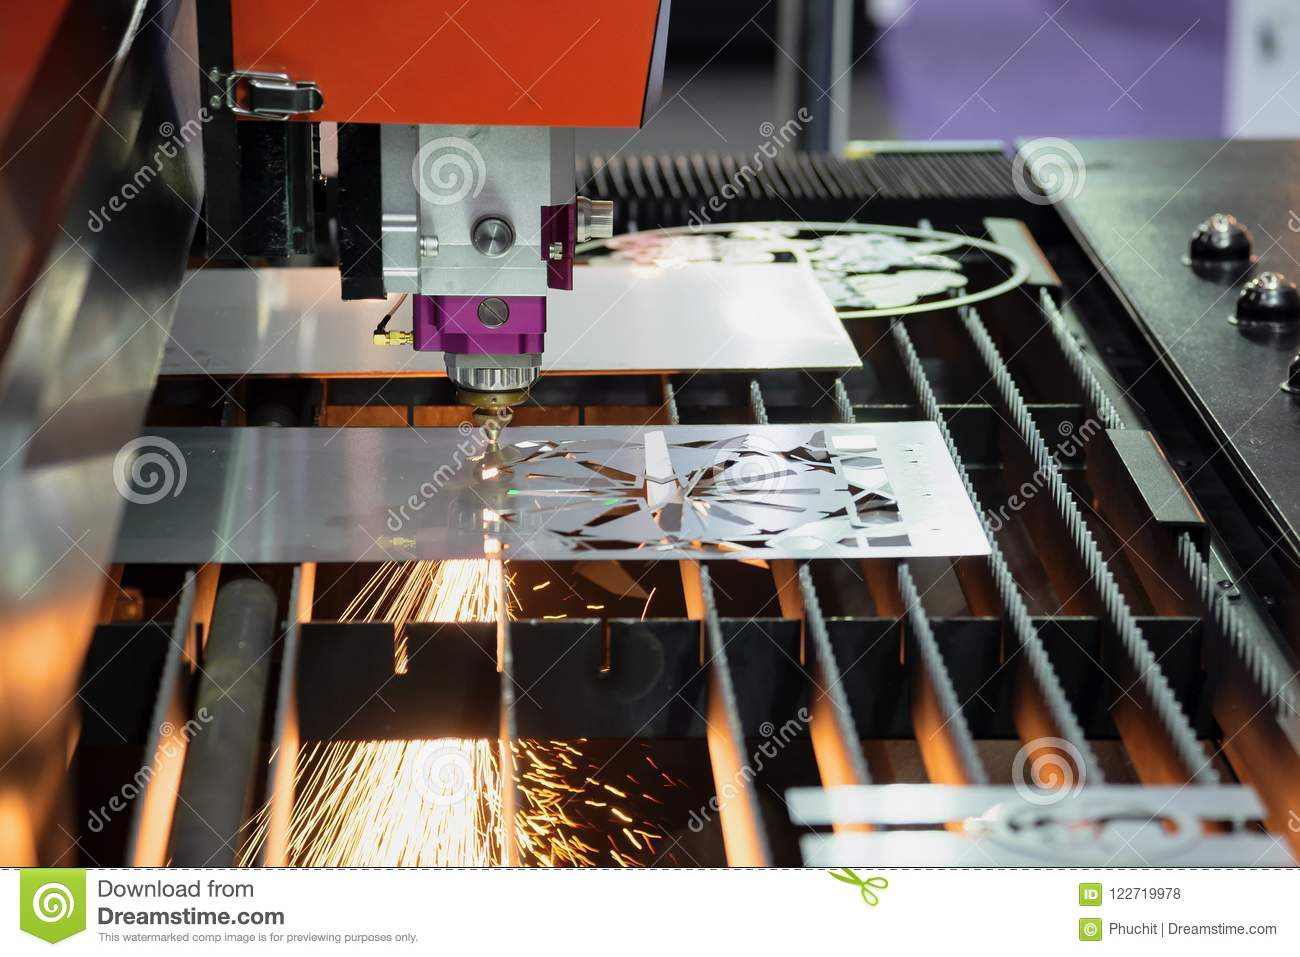 Laser Cutting Machine Metal The Cnc Fiber Laser Cutting Machine Cutting The Metal Plate Stock